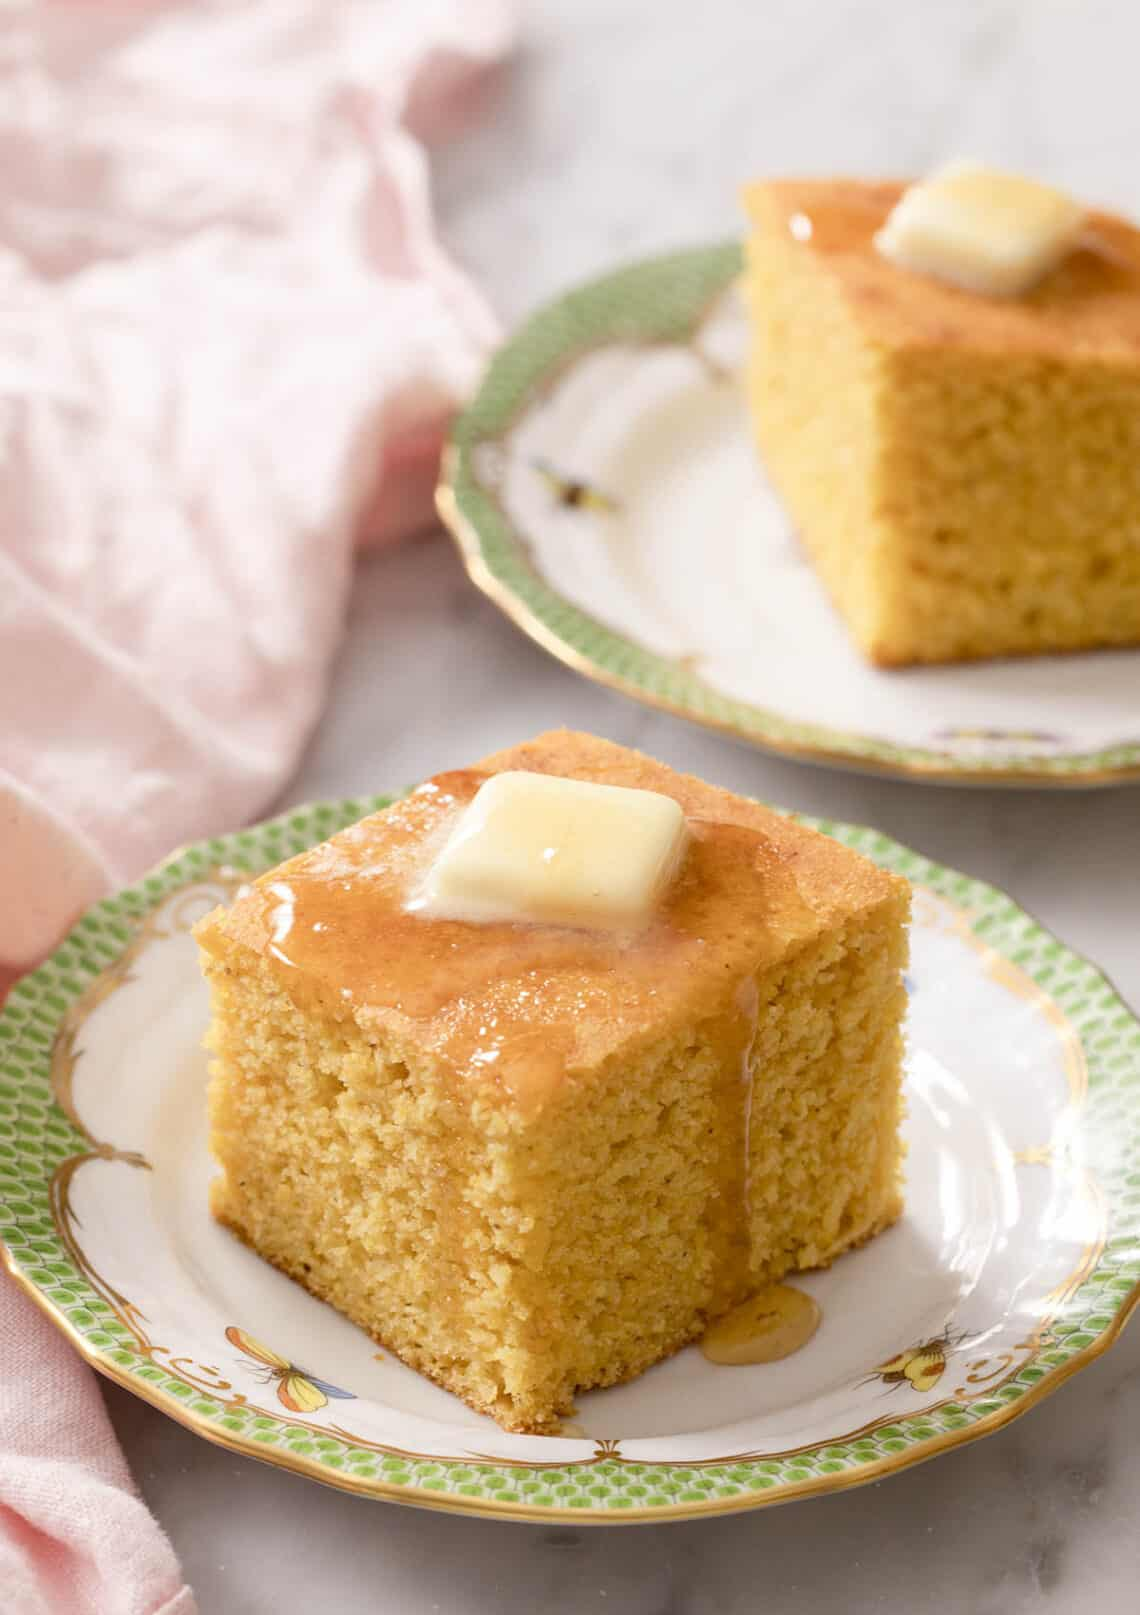 Pieces of cornbread topped with butter and honey on porcelain plates.